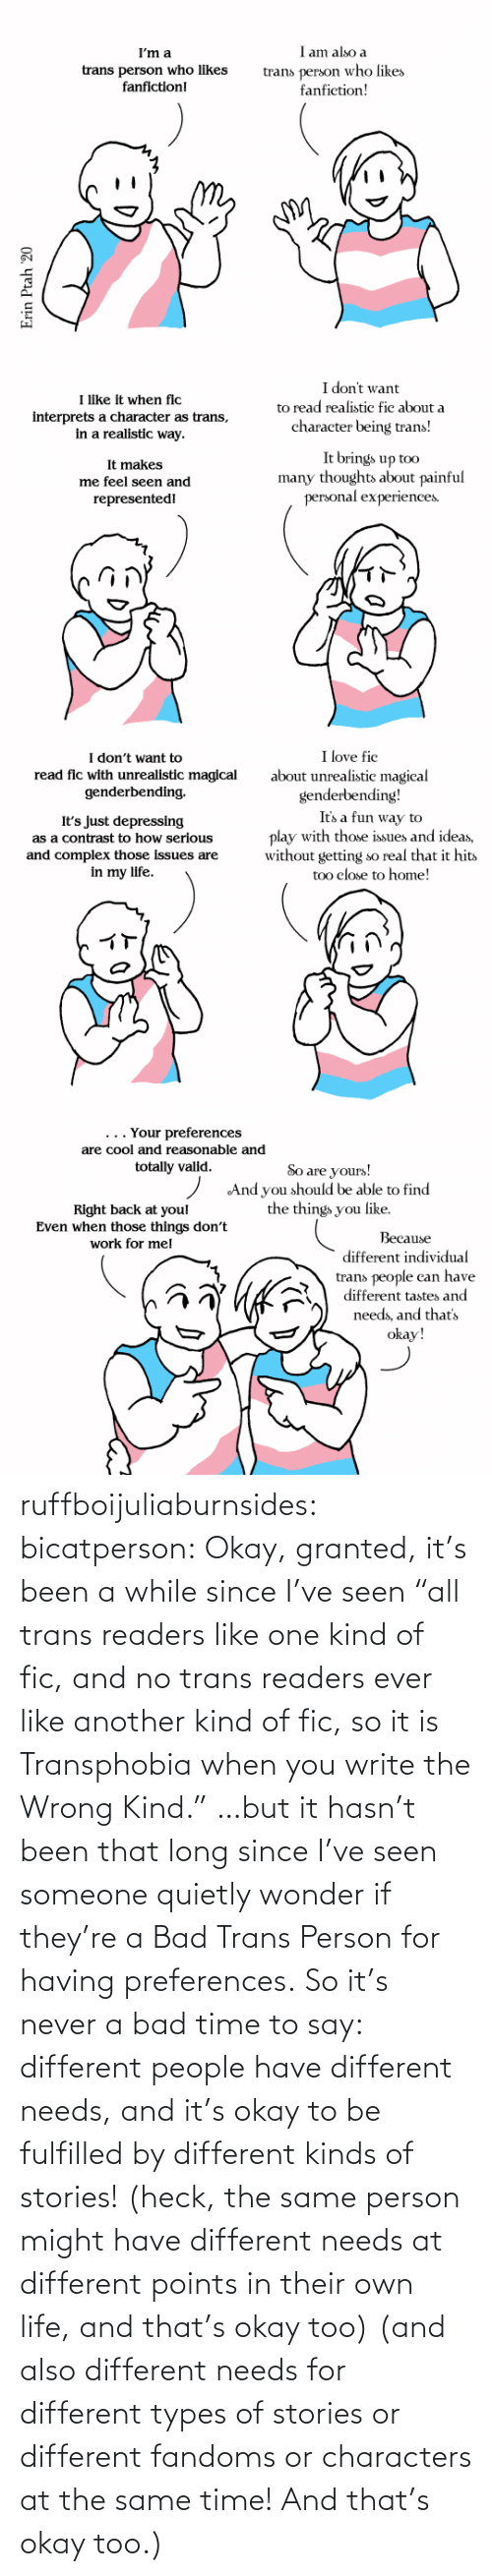 "Okay: ruffboijuliaburnsides: bicatperson:   Okay, granted, it's been a while since I've seen ""all trans readers  like one kind of fic, and no trans readers ever like another kind of  fic, so it is Transphobia when you write the Wrong Kind."" …but it hasn't been that long since I've seen someone quietly wonder if they're a Bad Trans Person for having preferences. So  it's never a bad time to say: different people have different needs,  and it's okay to be fulfilled by different kinds of stories! (heck, the same person might have different needs at different points in their own life, and that's okay too)    (and also different needs for different types of stories or different fandoms or characters at the same time!  And that's okay too.)"